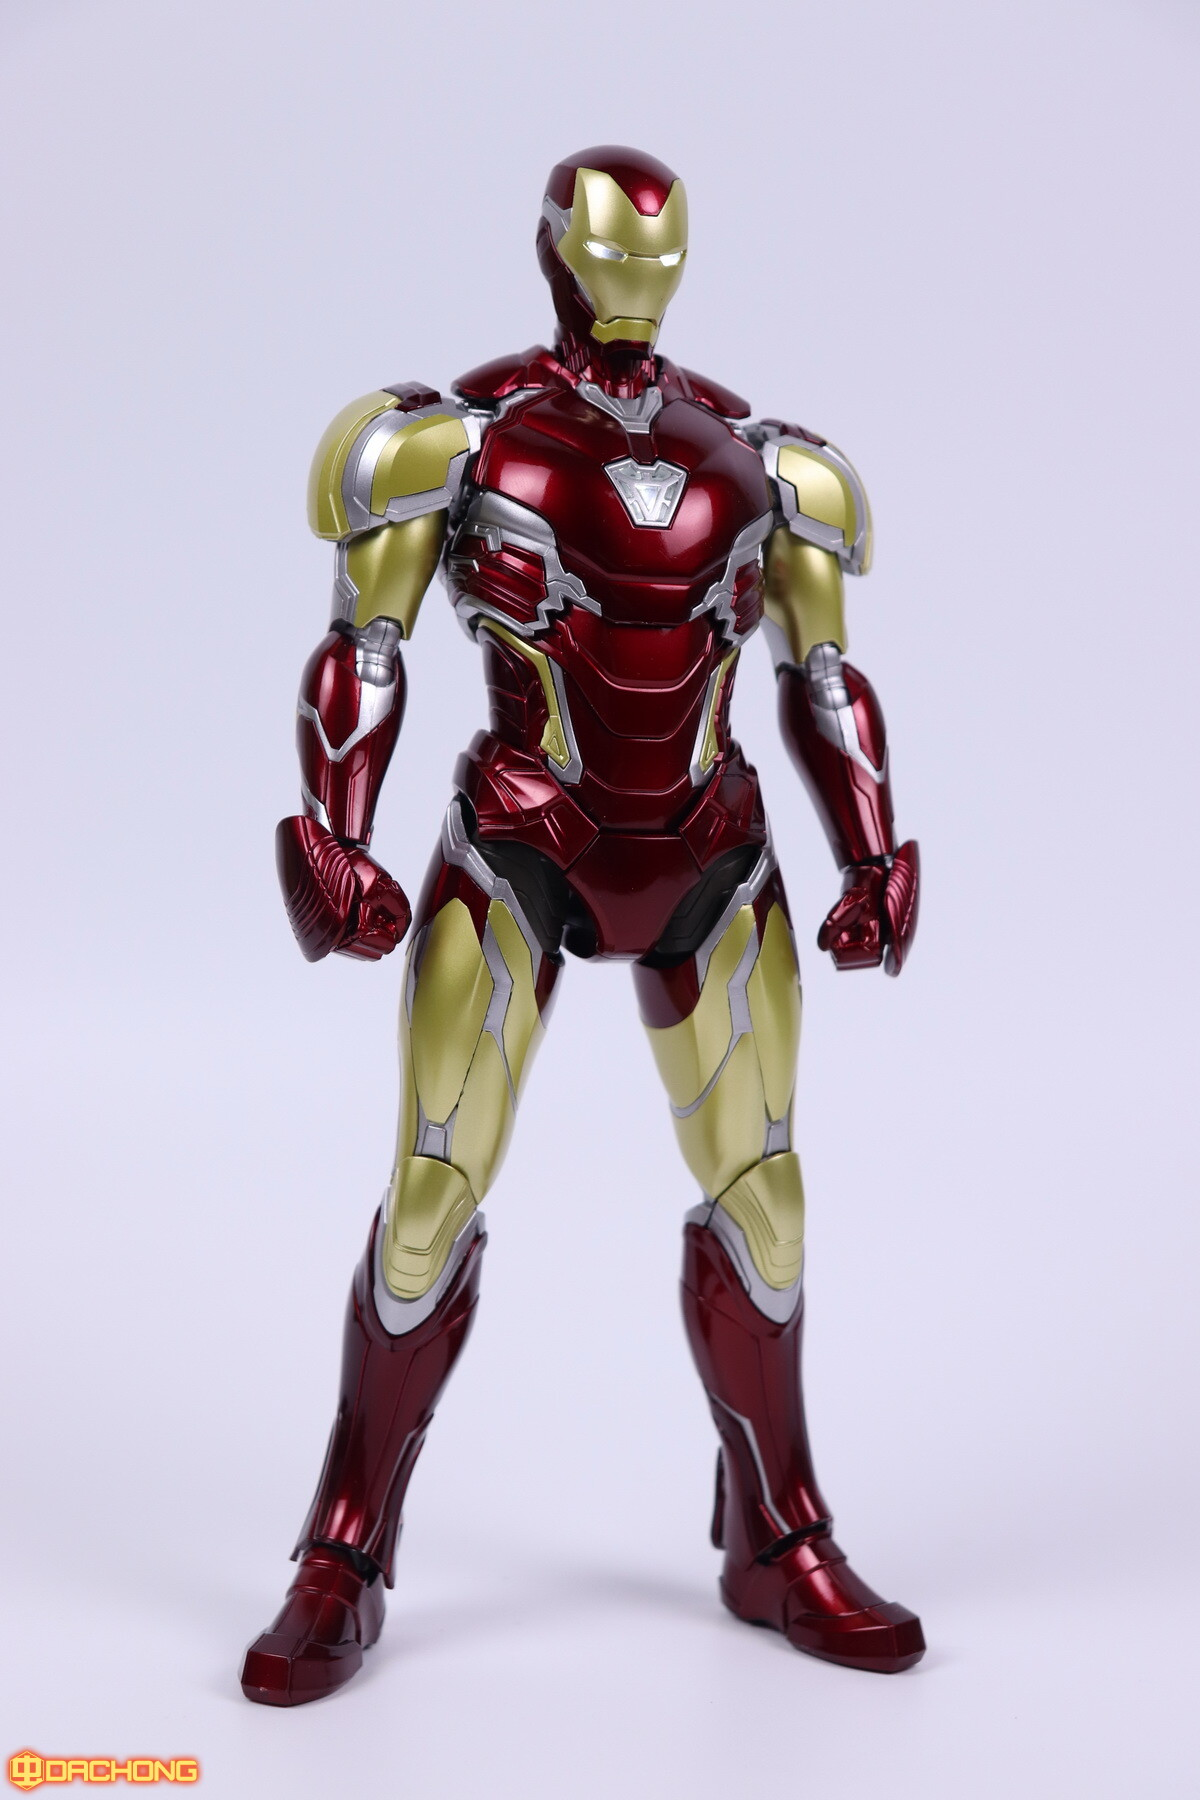 S498_2_e_model_ironman_mk85_dx_096.jpg